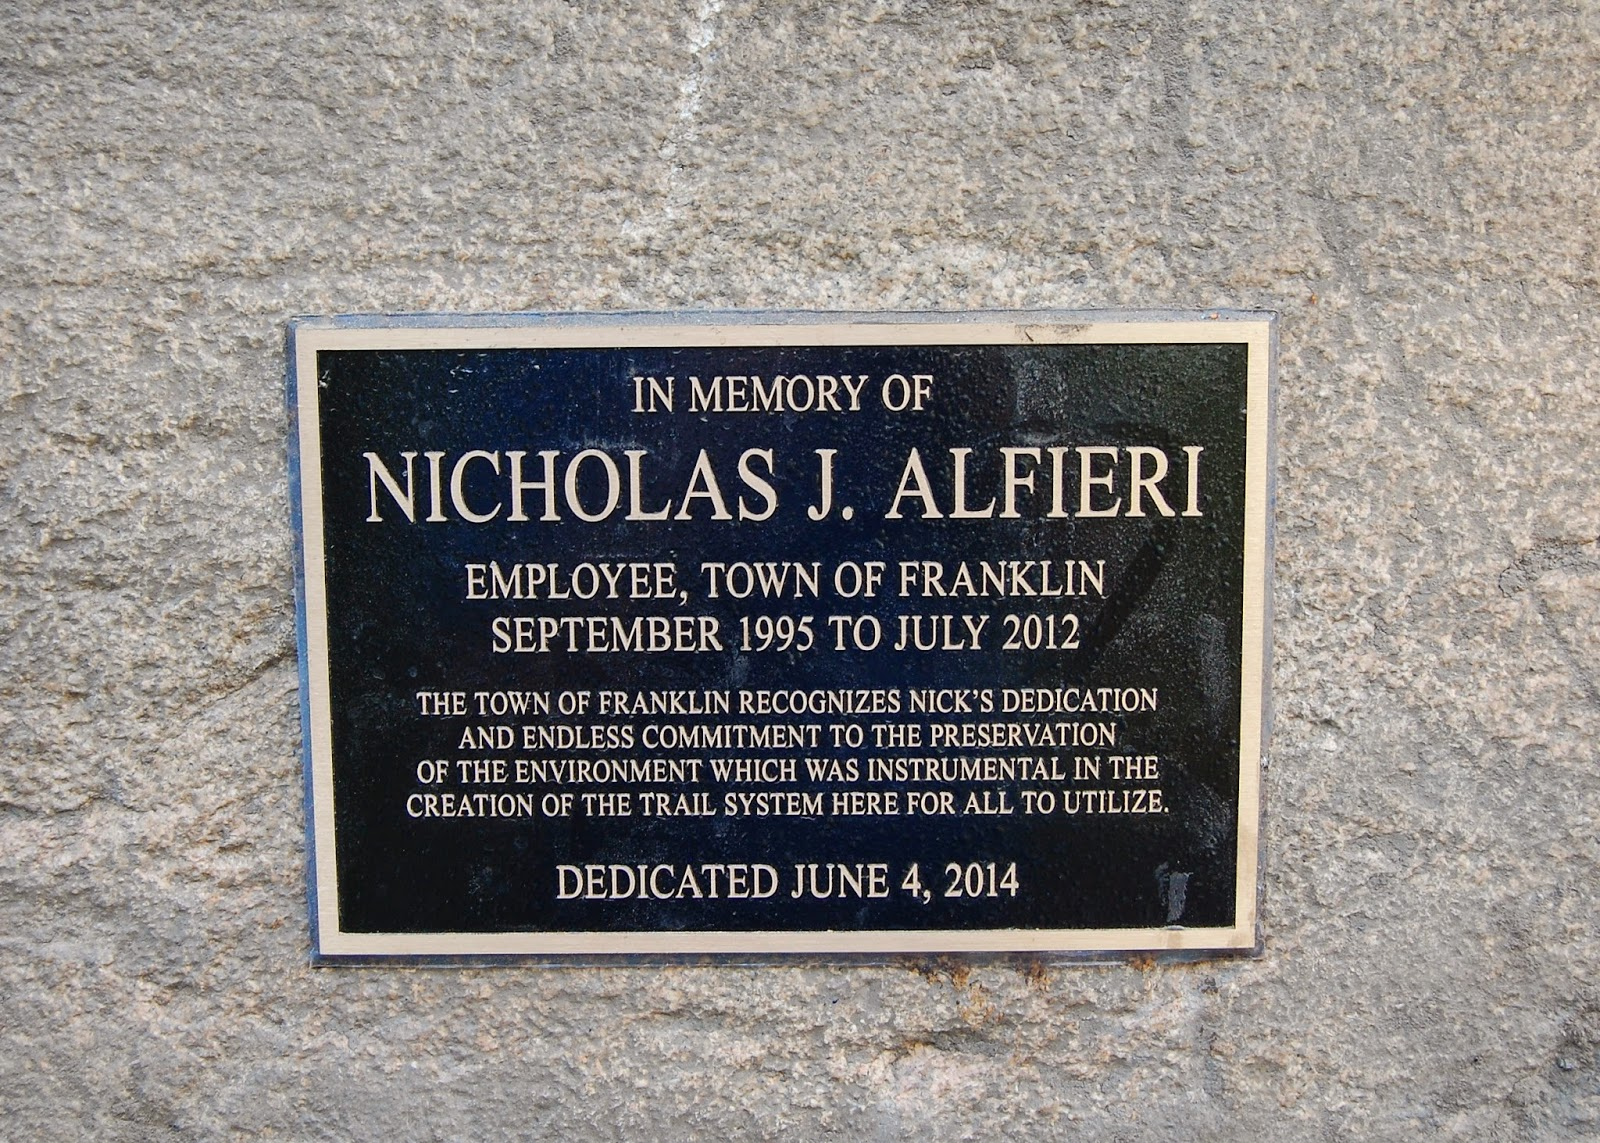 close up of the dedication to Nick Alfieri